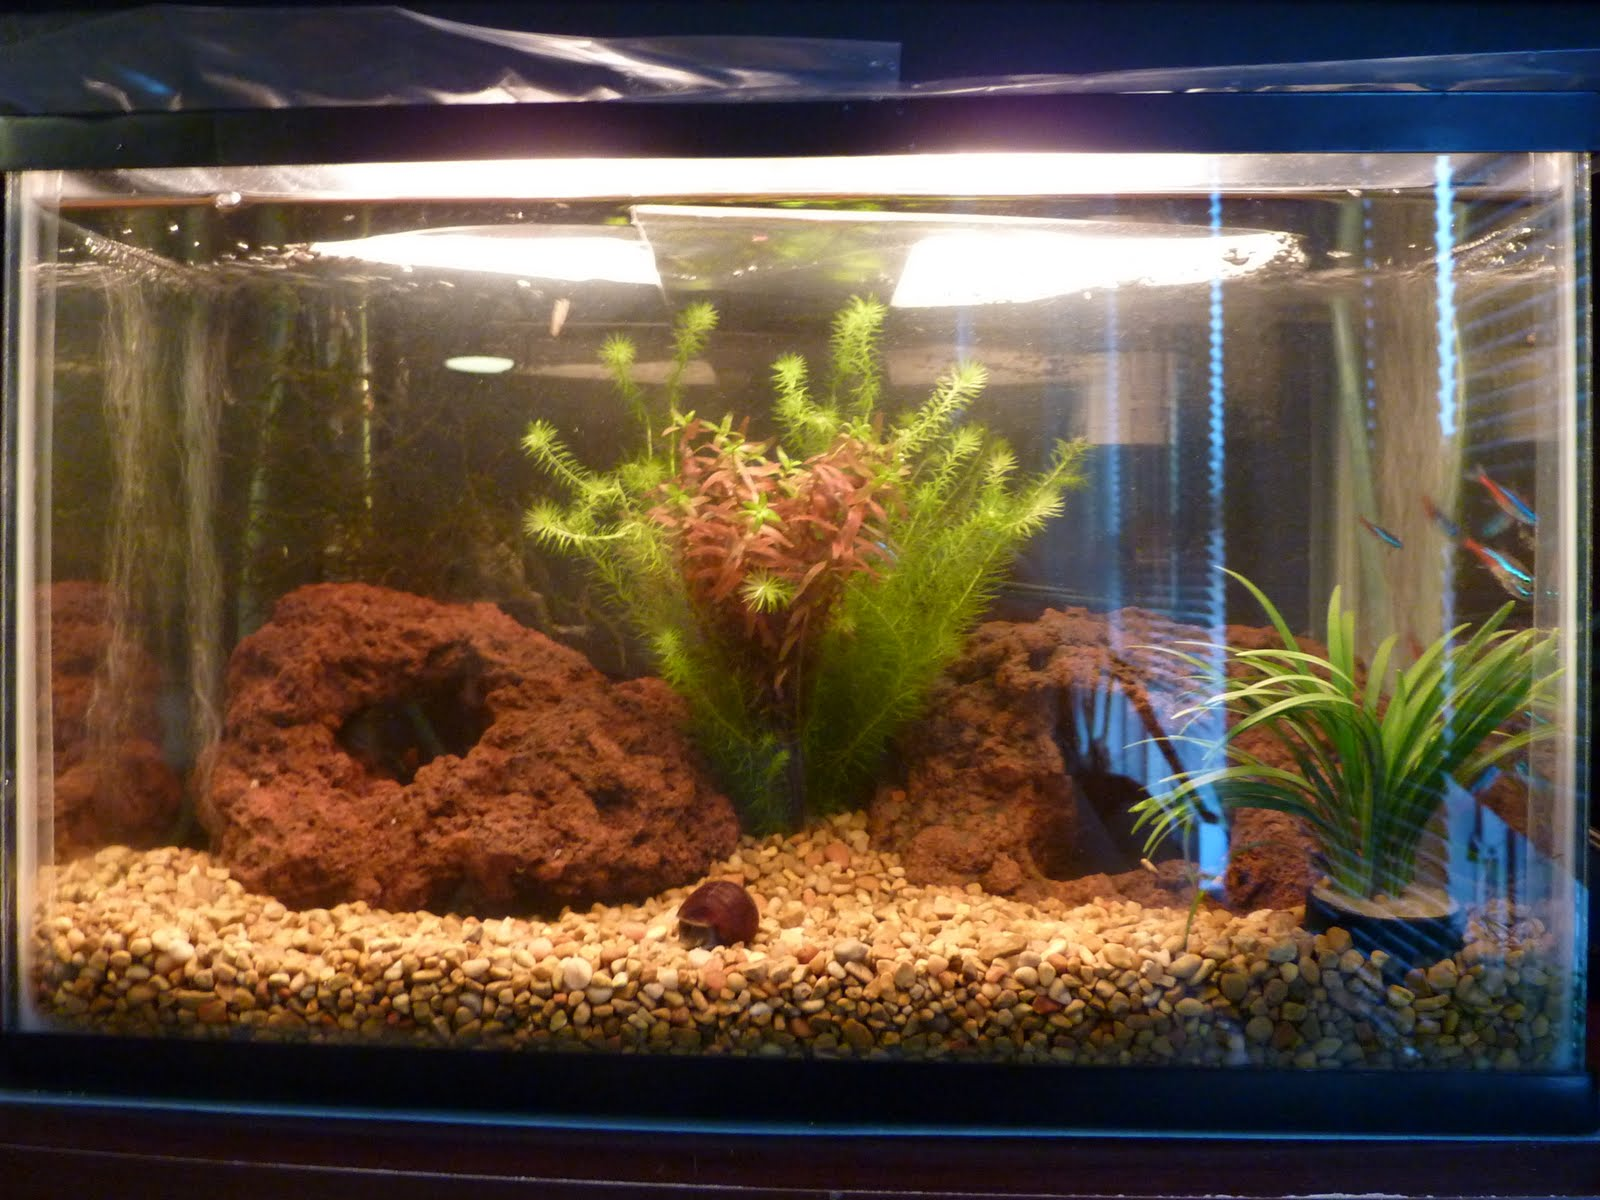 Over the next year, I switched up the tank a bit. I swapped the 5 ...